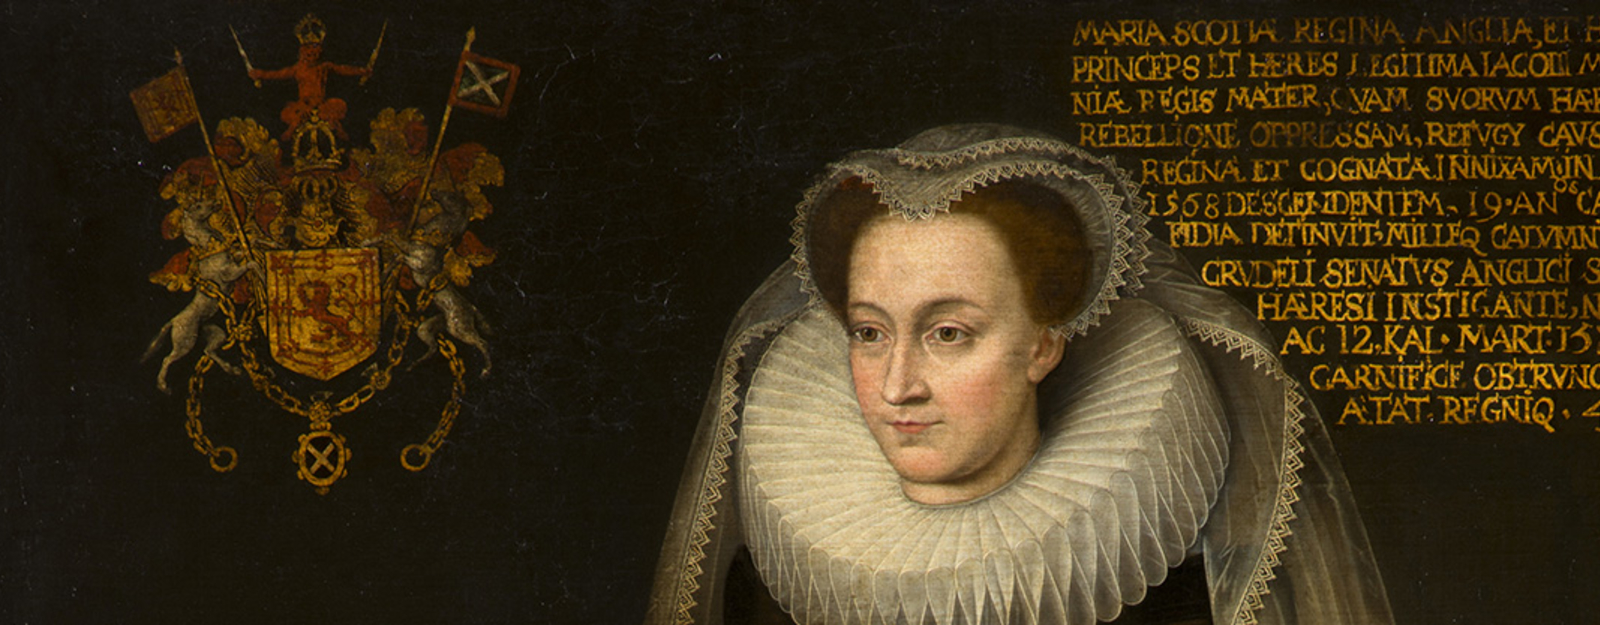 Posthumous portrait of Mary Queen of Scots